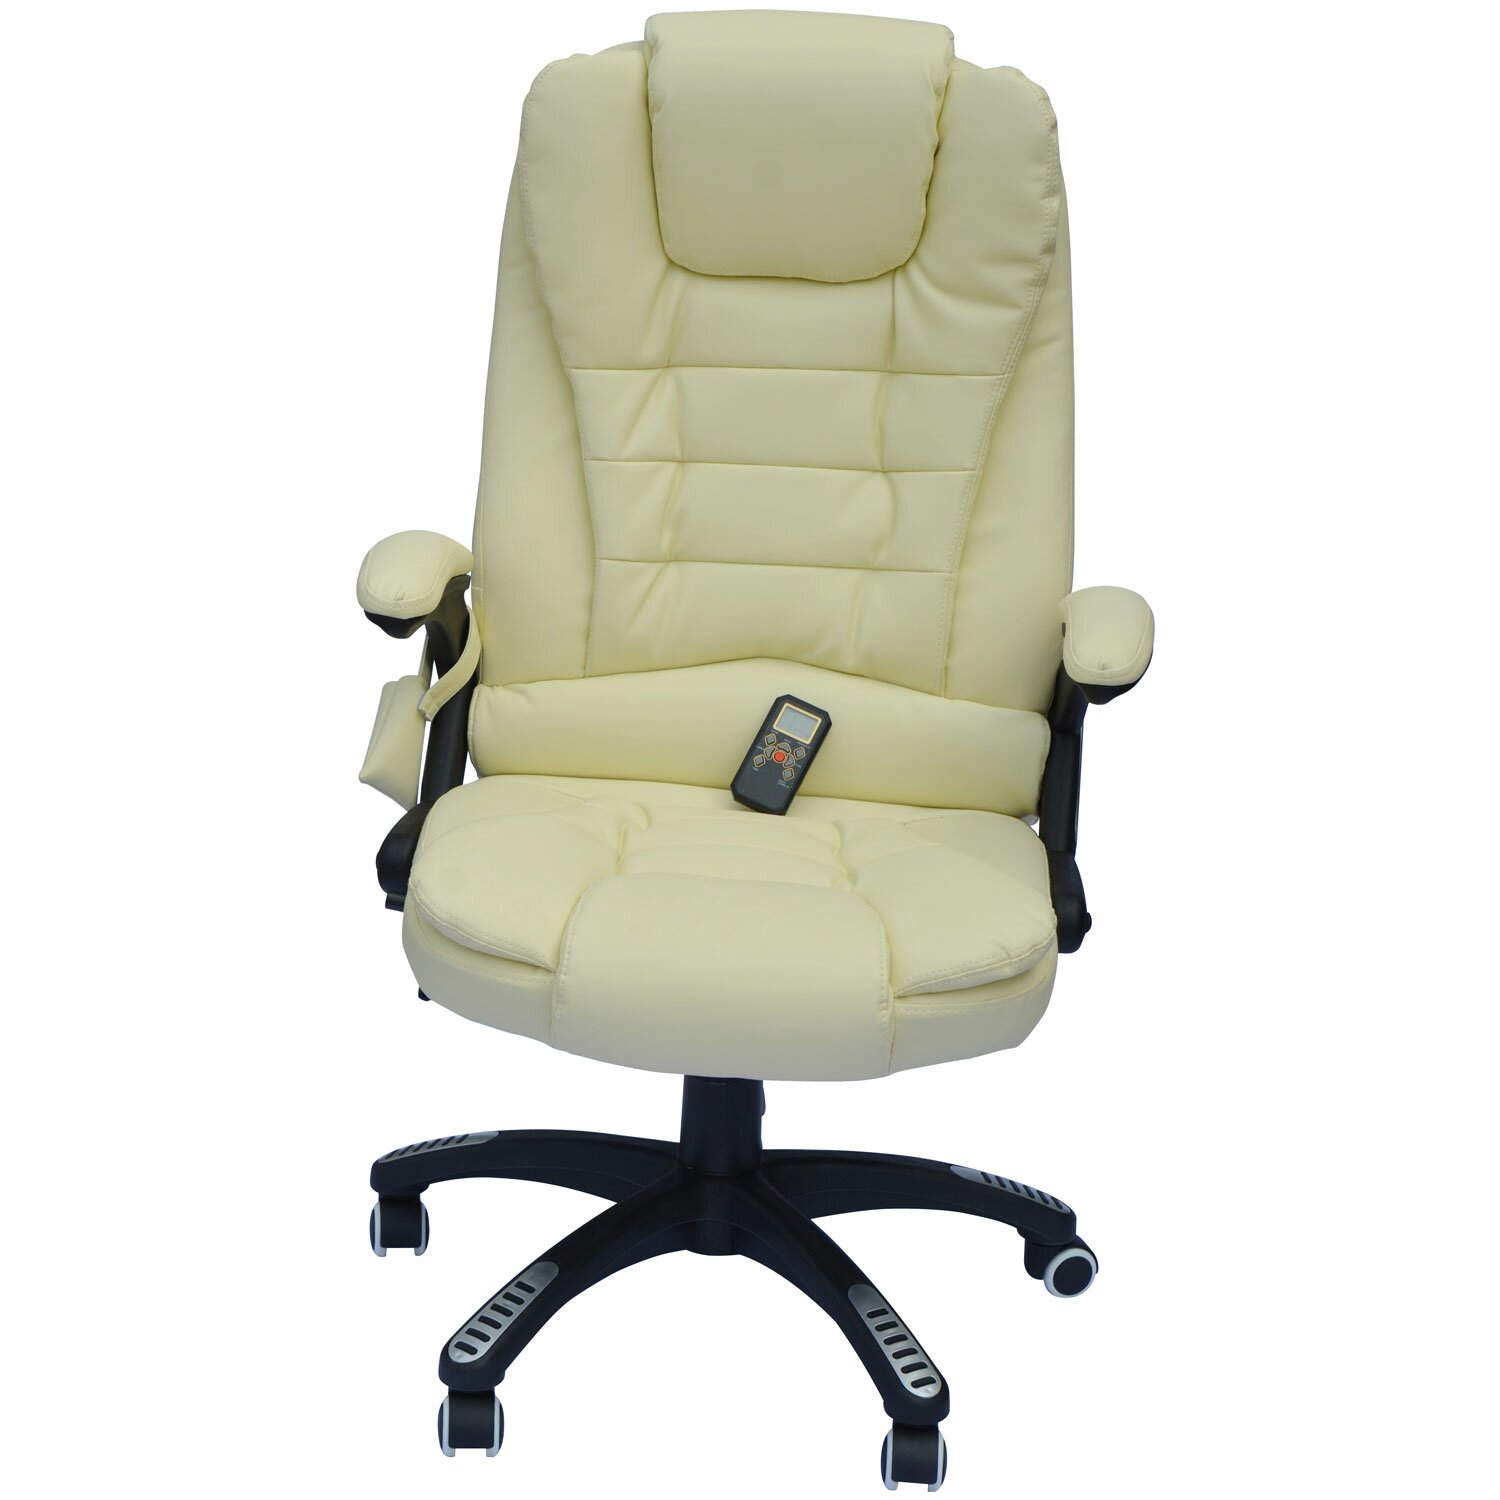 Hom Hom Faux Leather Heated Massage Chair & Reviews